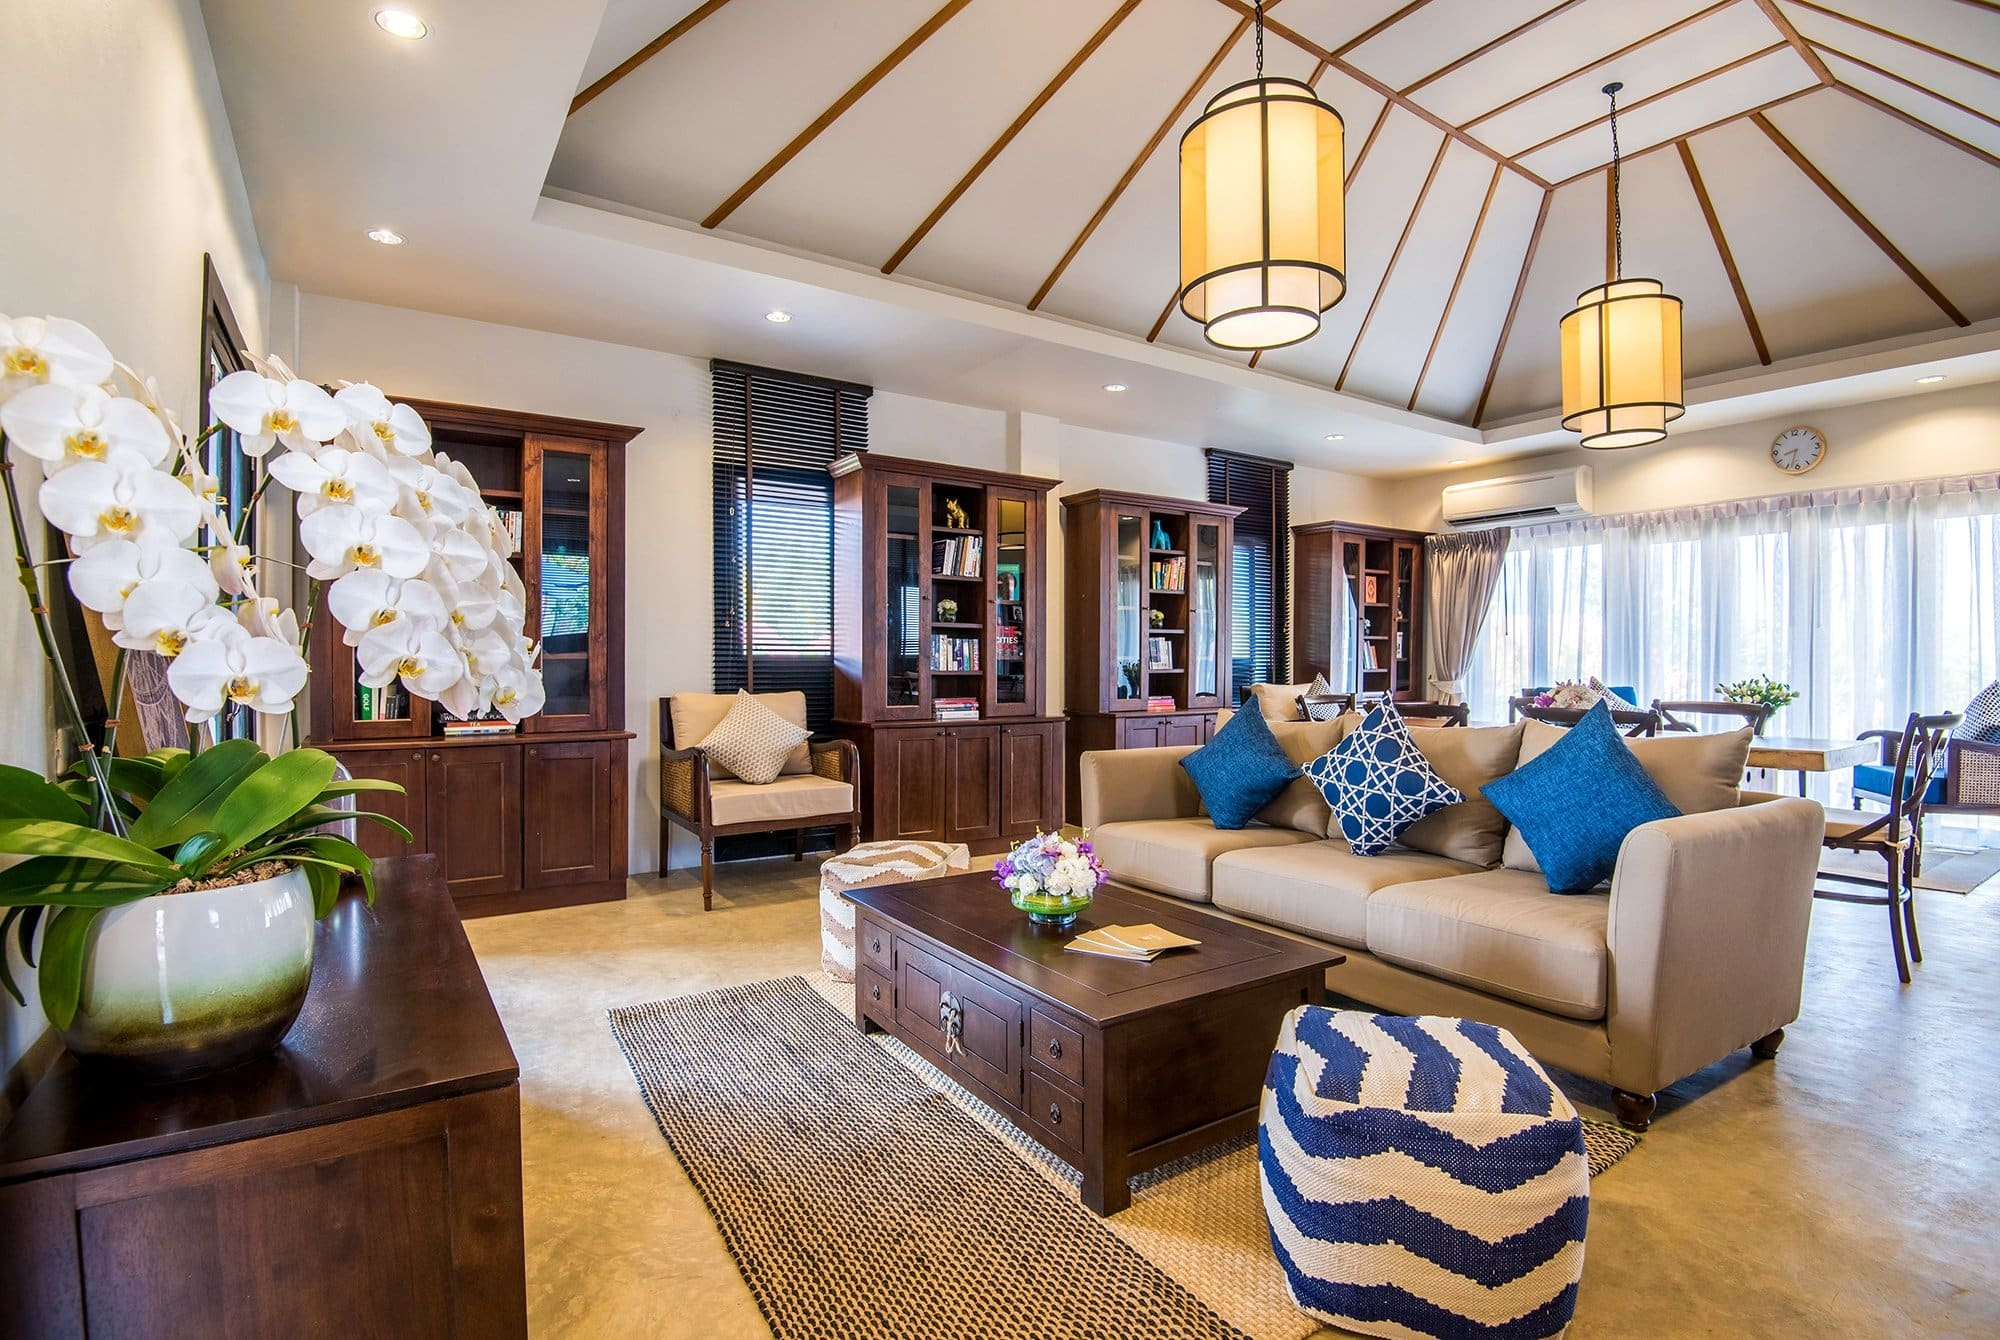 The Cabin Thailand Cost